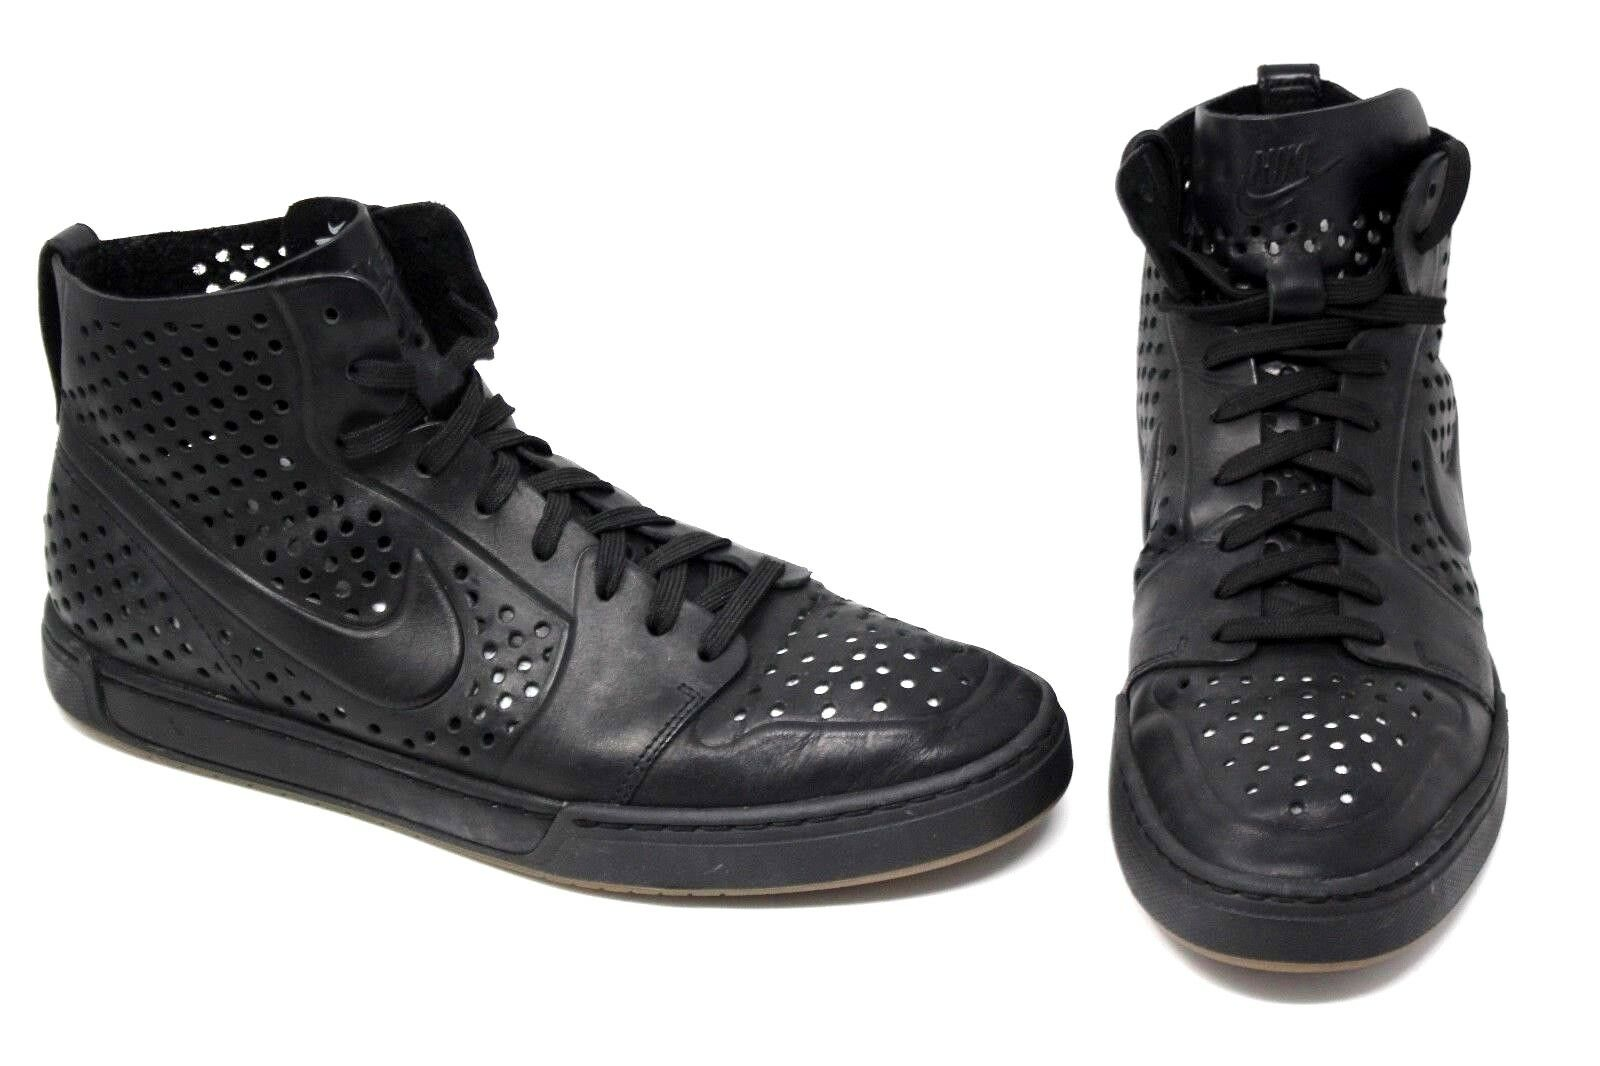 NIKE Air ROYAL Mid Lite VT OG Black Perforated Leather Men's Size 9.5 EUC